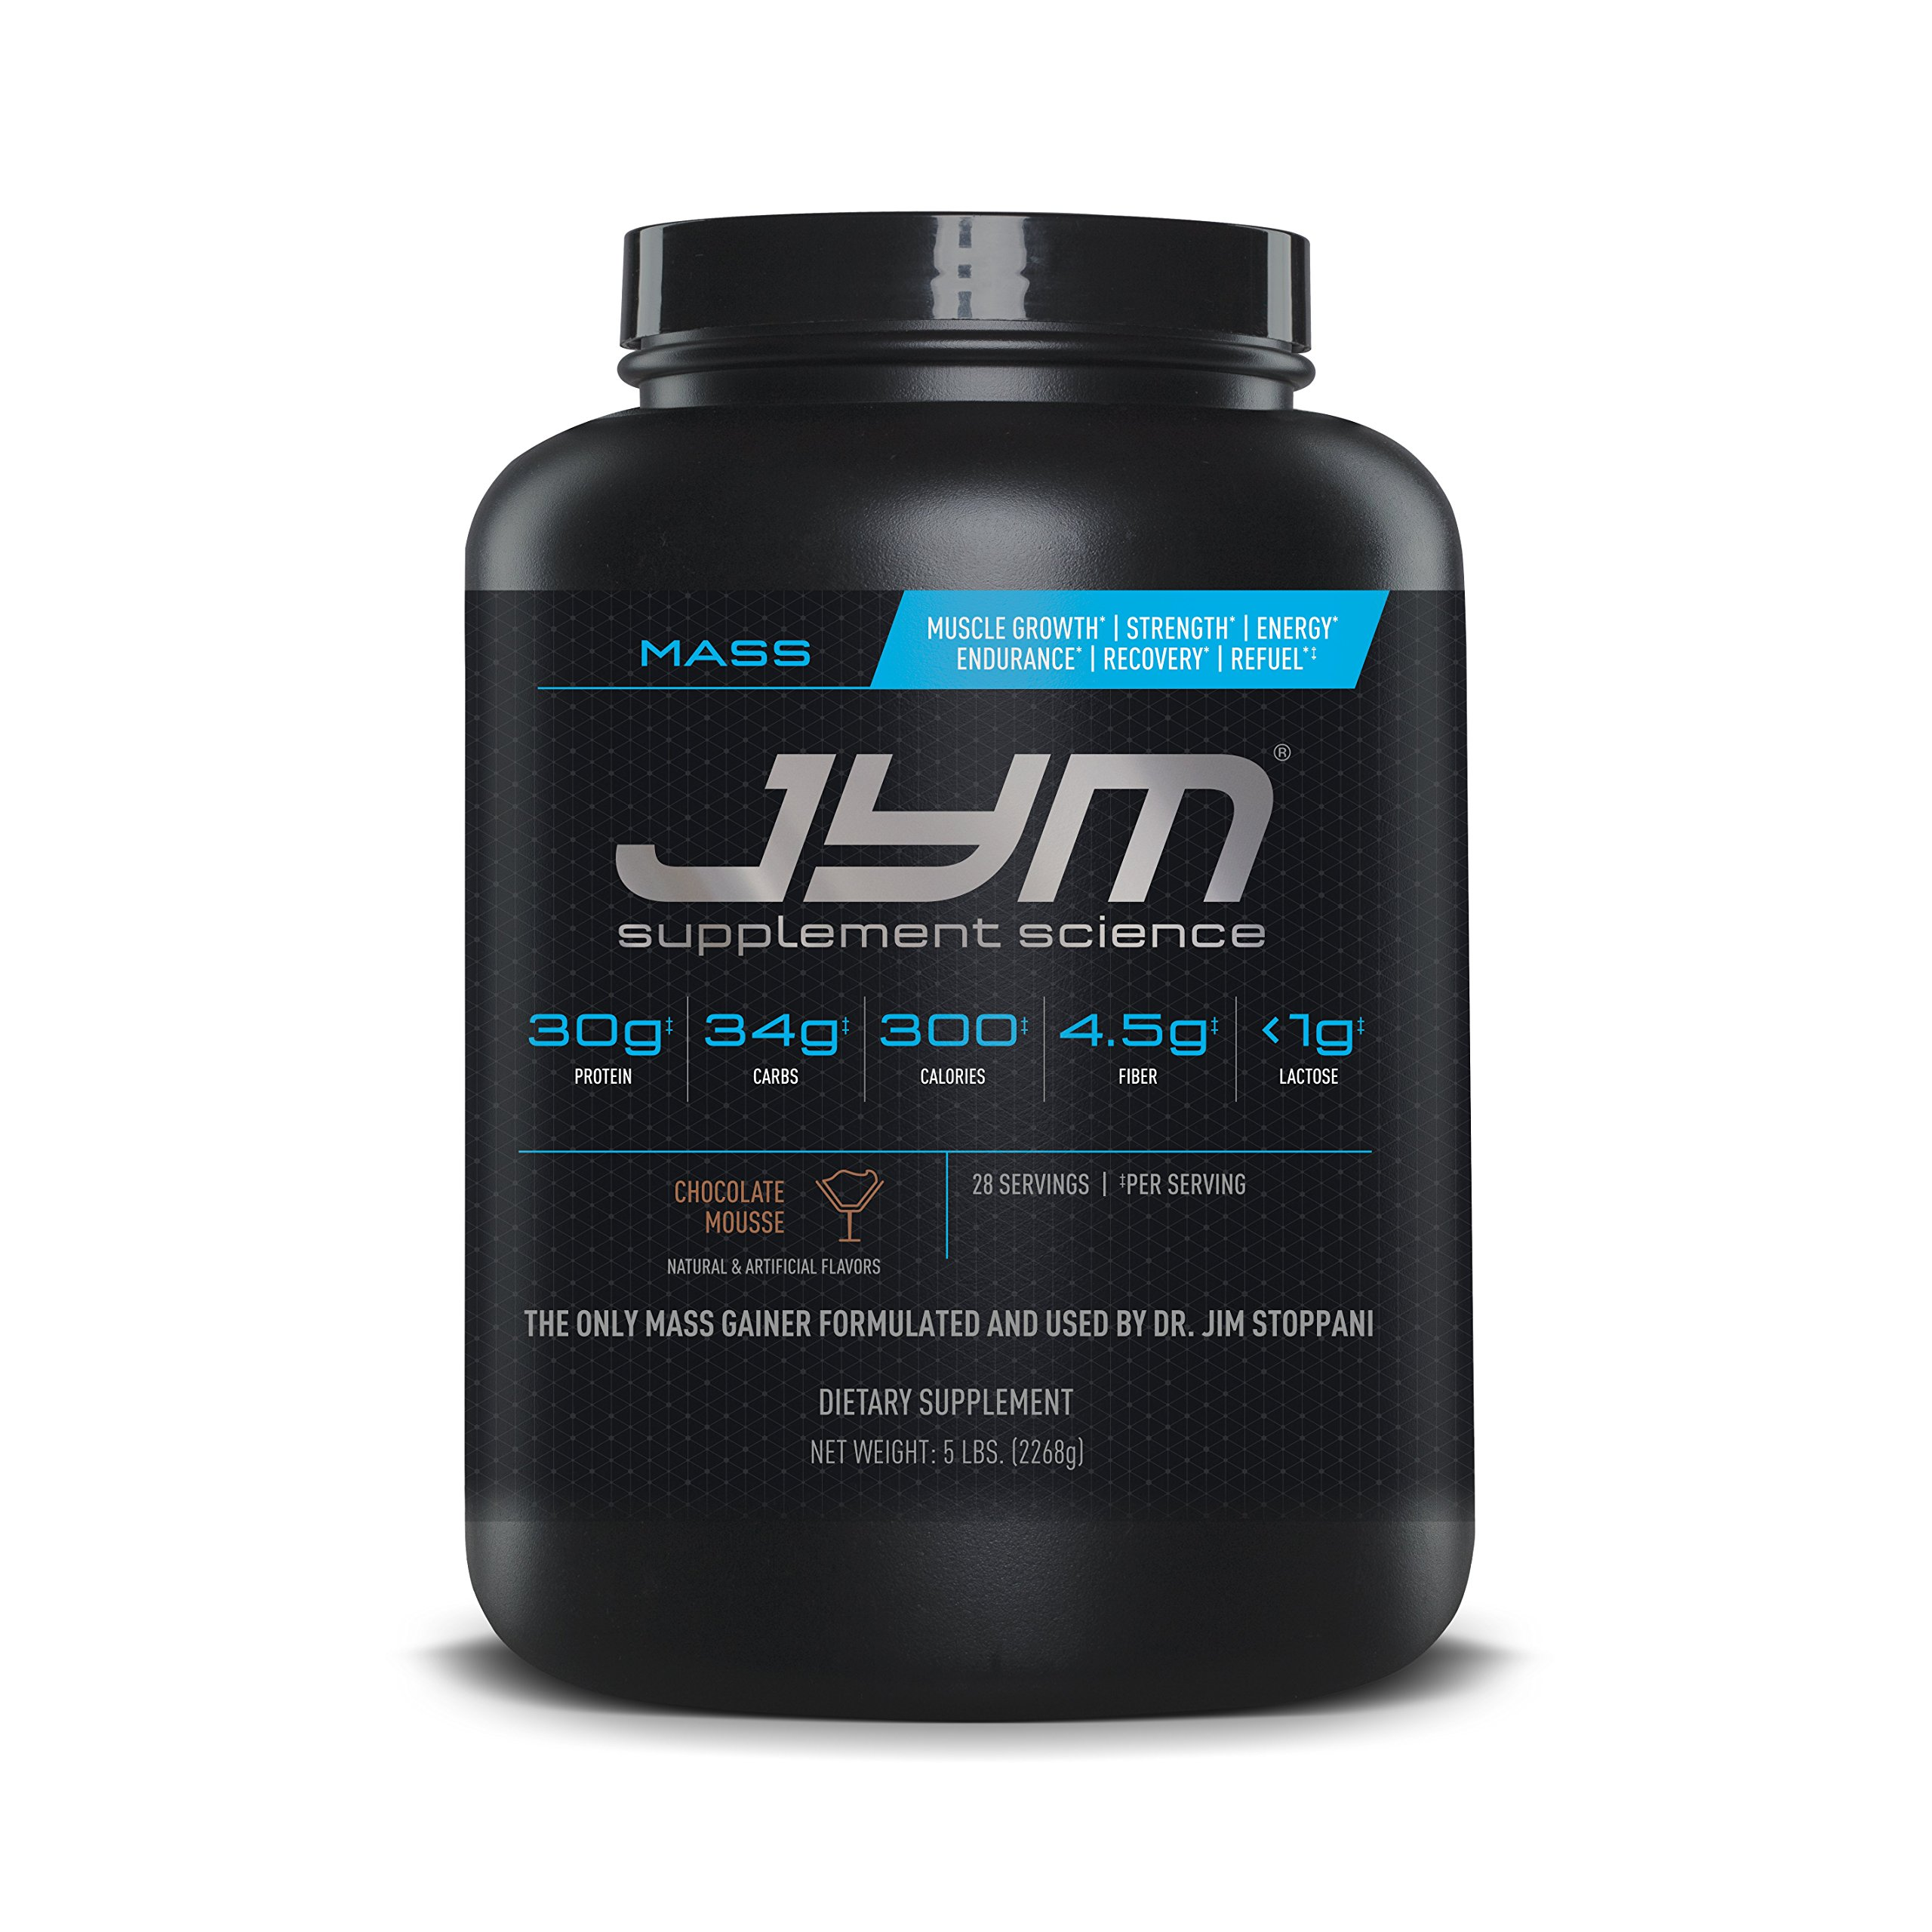 Mass JYM Protein Powder - Egg White, Milk, Whey Protein Isolates & Micellar Casein | JYM Supplement Science | Chocolate Mousse Flavor, 5 lb by JYM Supplement Science